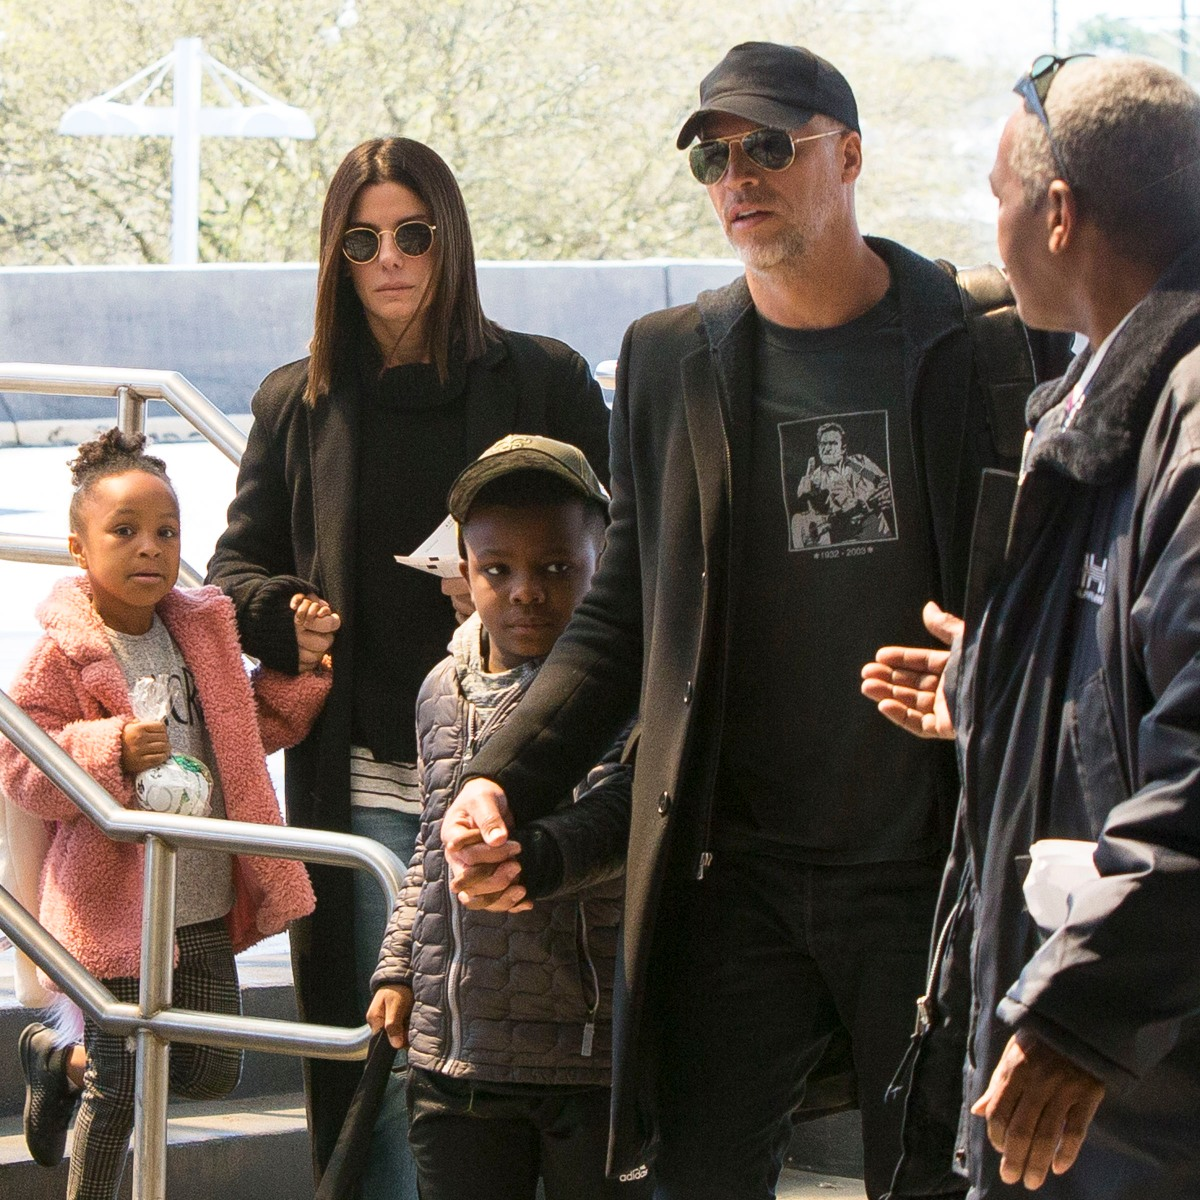 Sandra Bullock Steps Out With Her Rarely Seen Kids in New